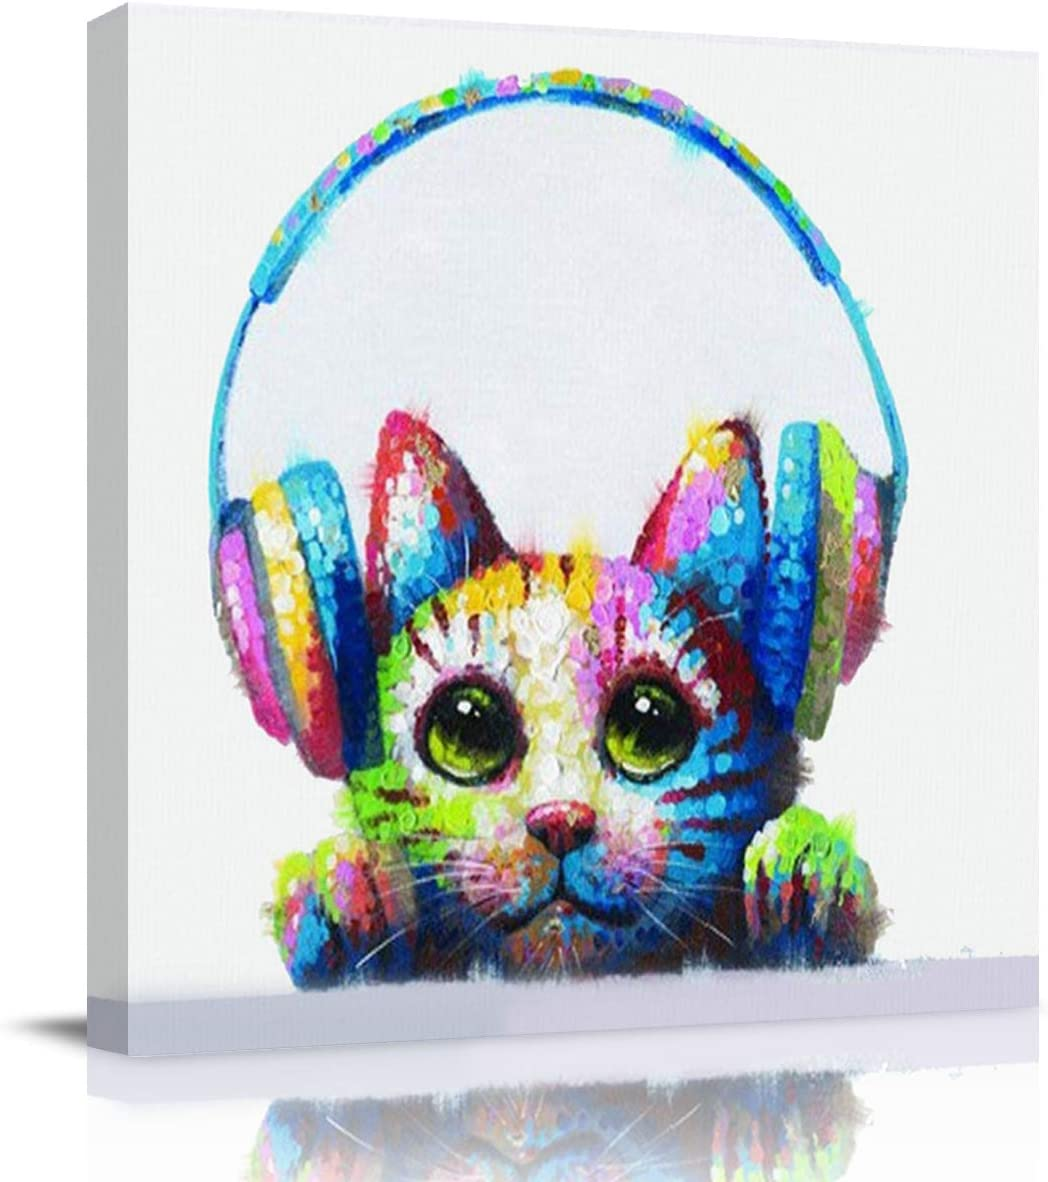 Crystal Emotion Cat With Headphones Canvas Square Wall Art Oil Painting Hand Painted 12 Inch Morden Artwork Prints Picture Paintings For Home Living Room Decor Gift Framed Ready To Hang Posters Prints